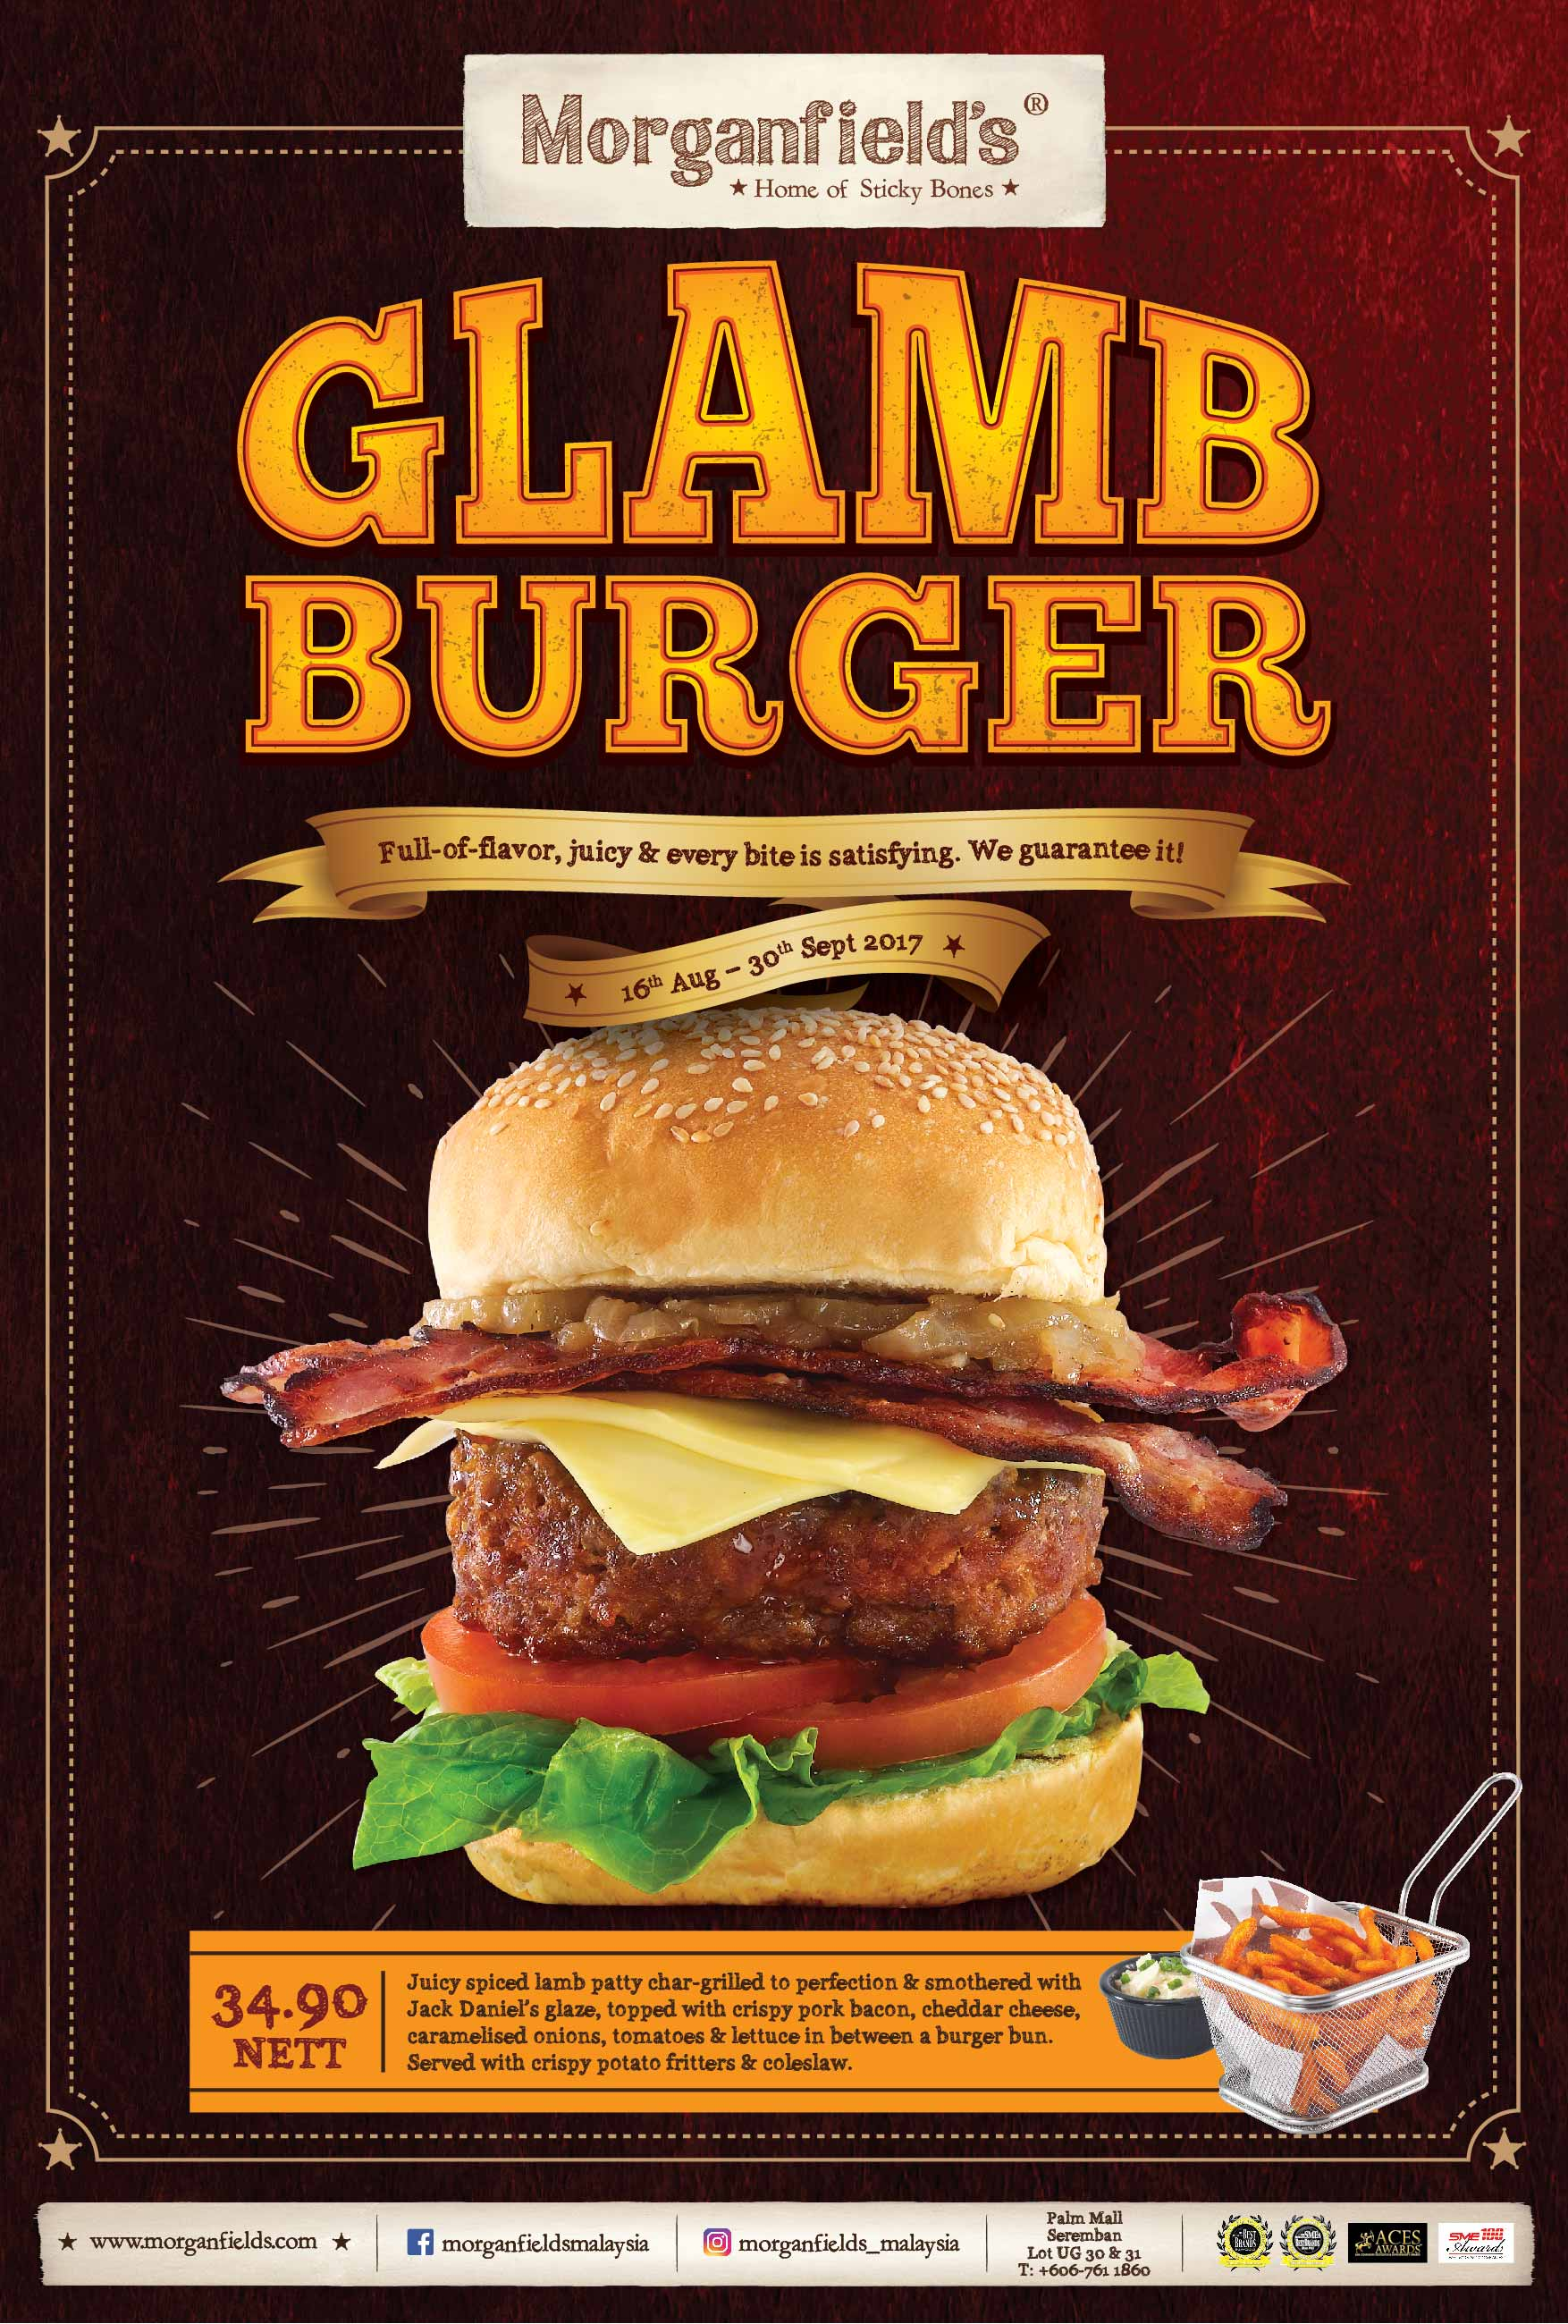 Morganfield's Glamb Burger Promotion